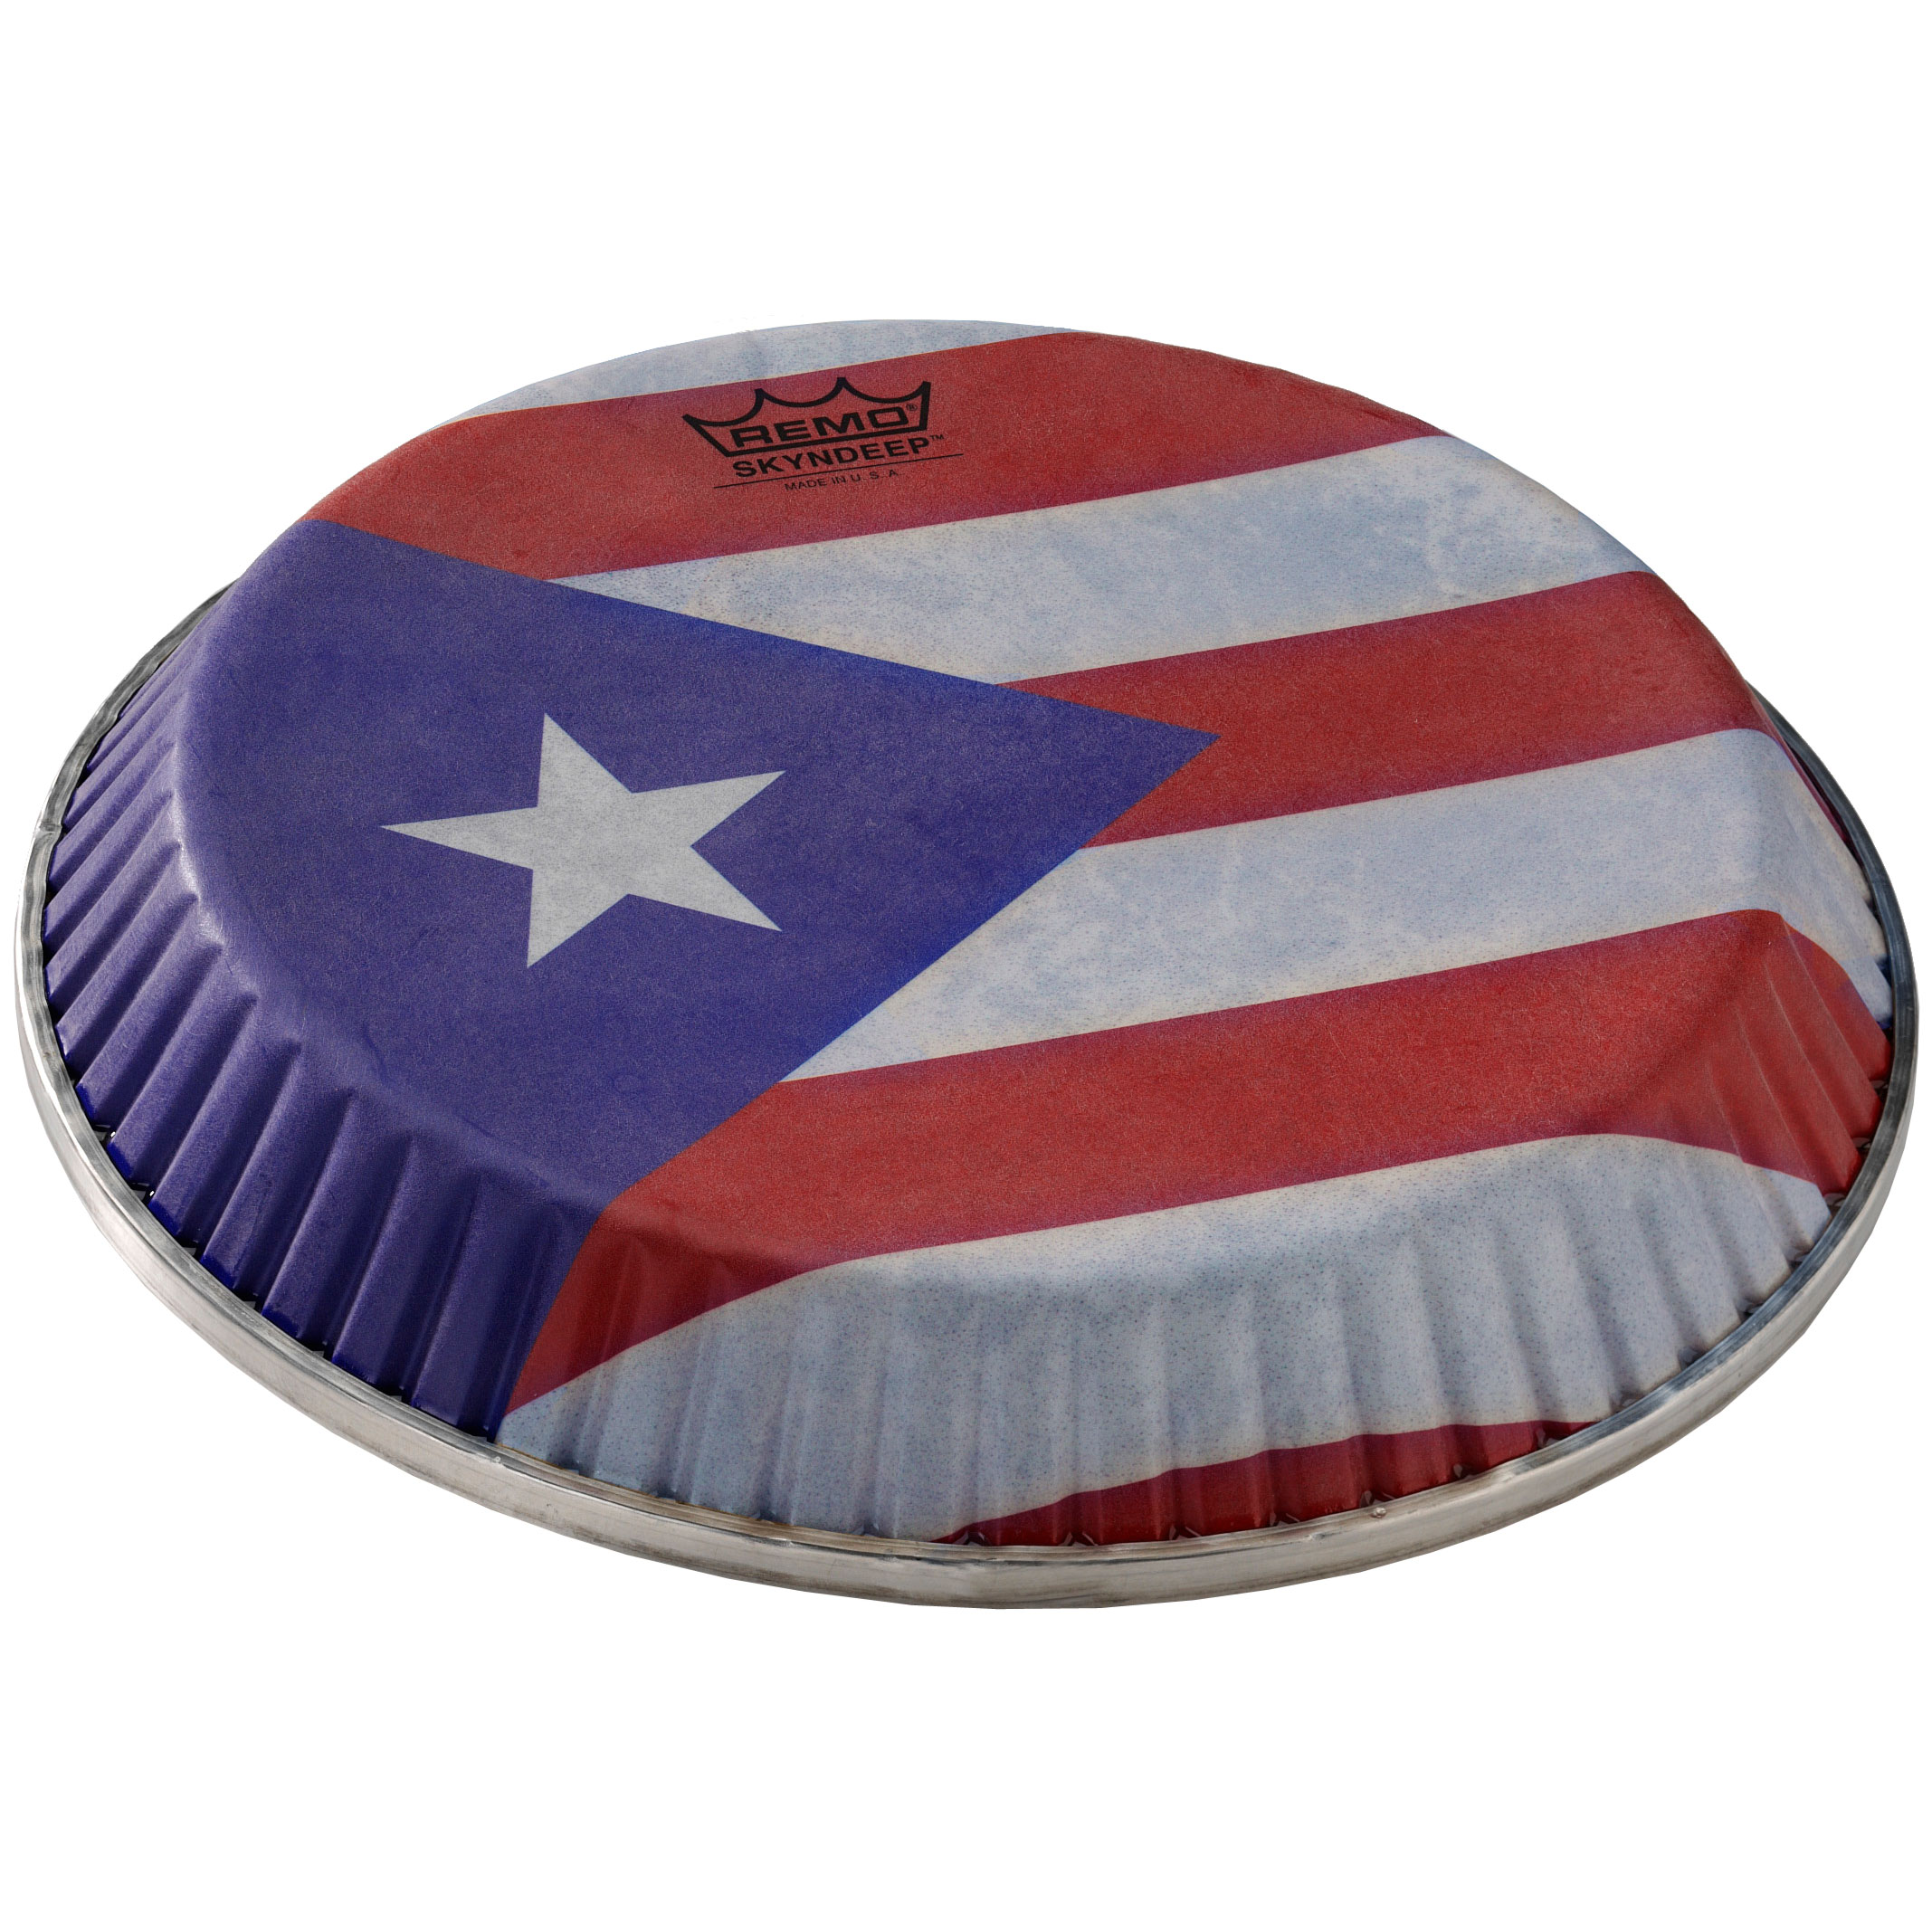 "Remo 11.75"" Symmetry Skyndeep Conga Drum Head (D2 Collar) with Puerto Rican Flag Graphic"